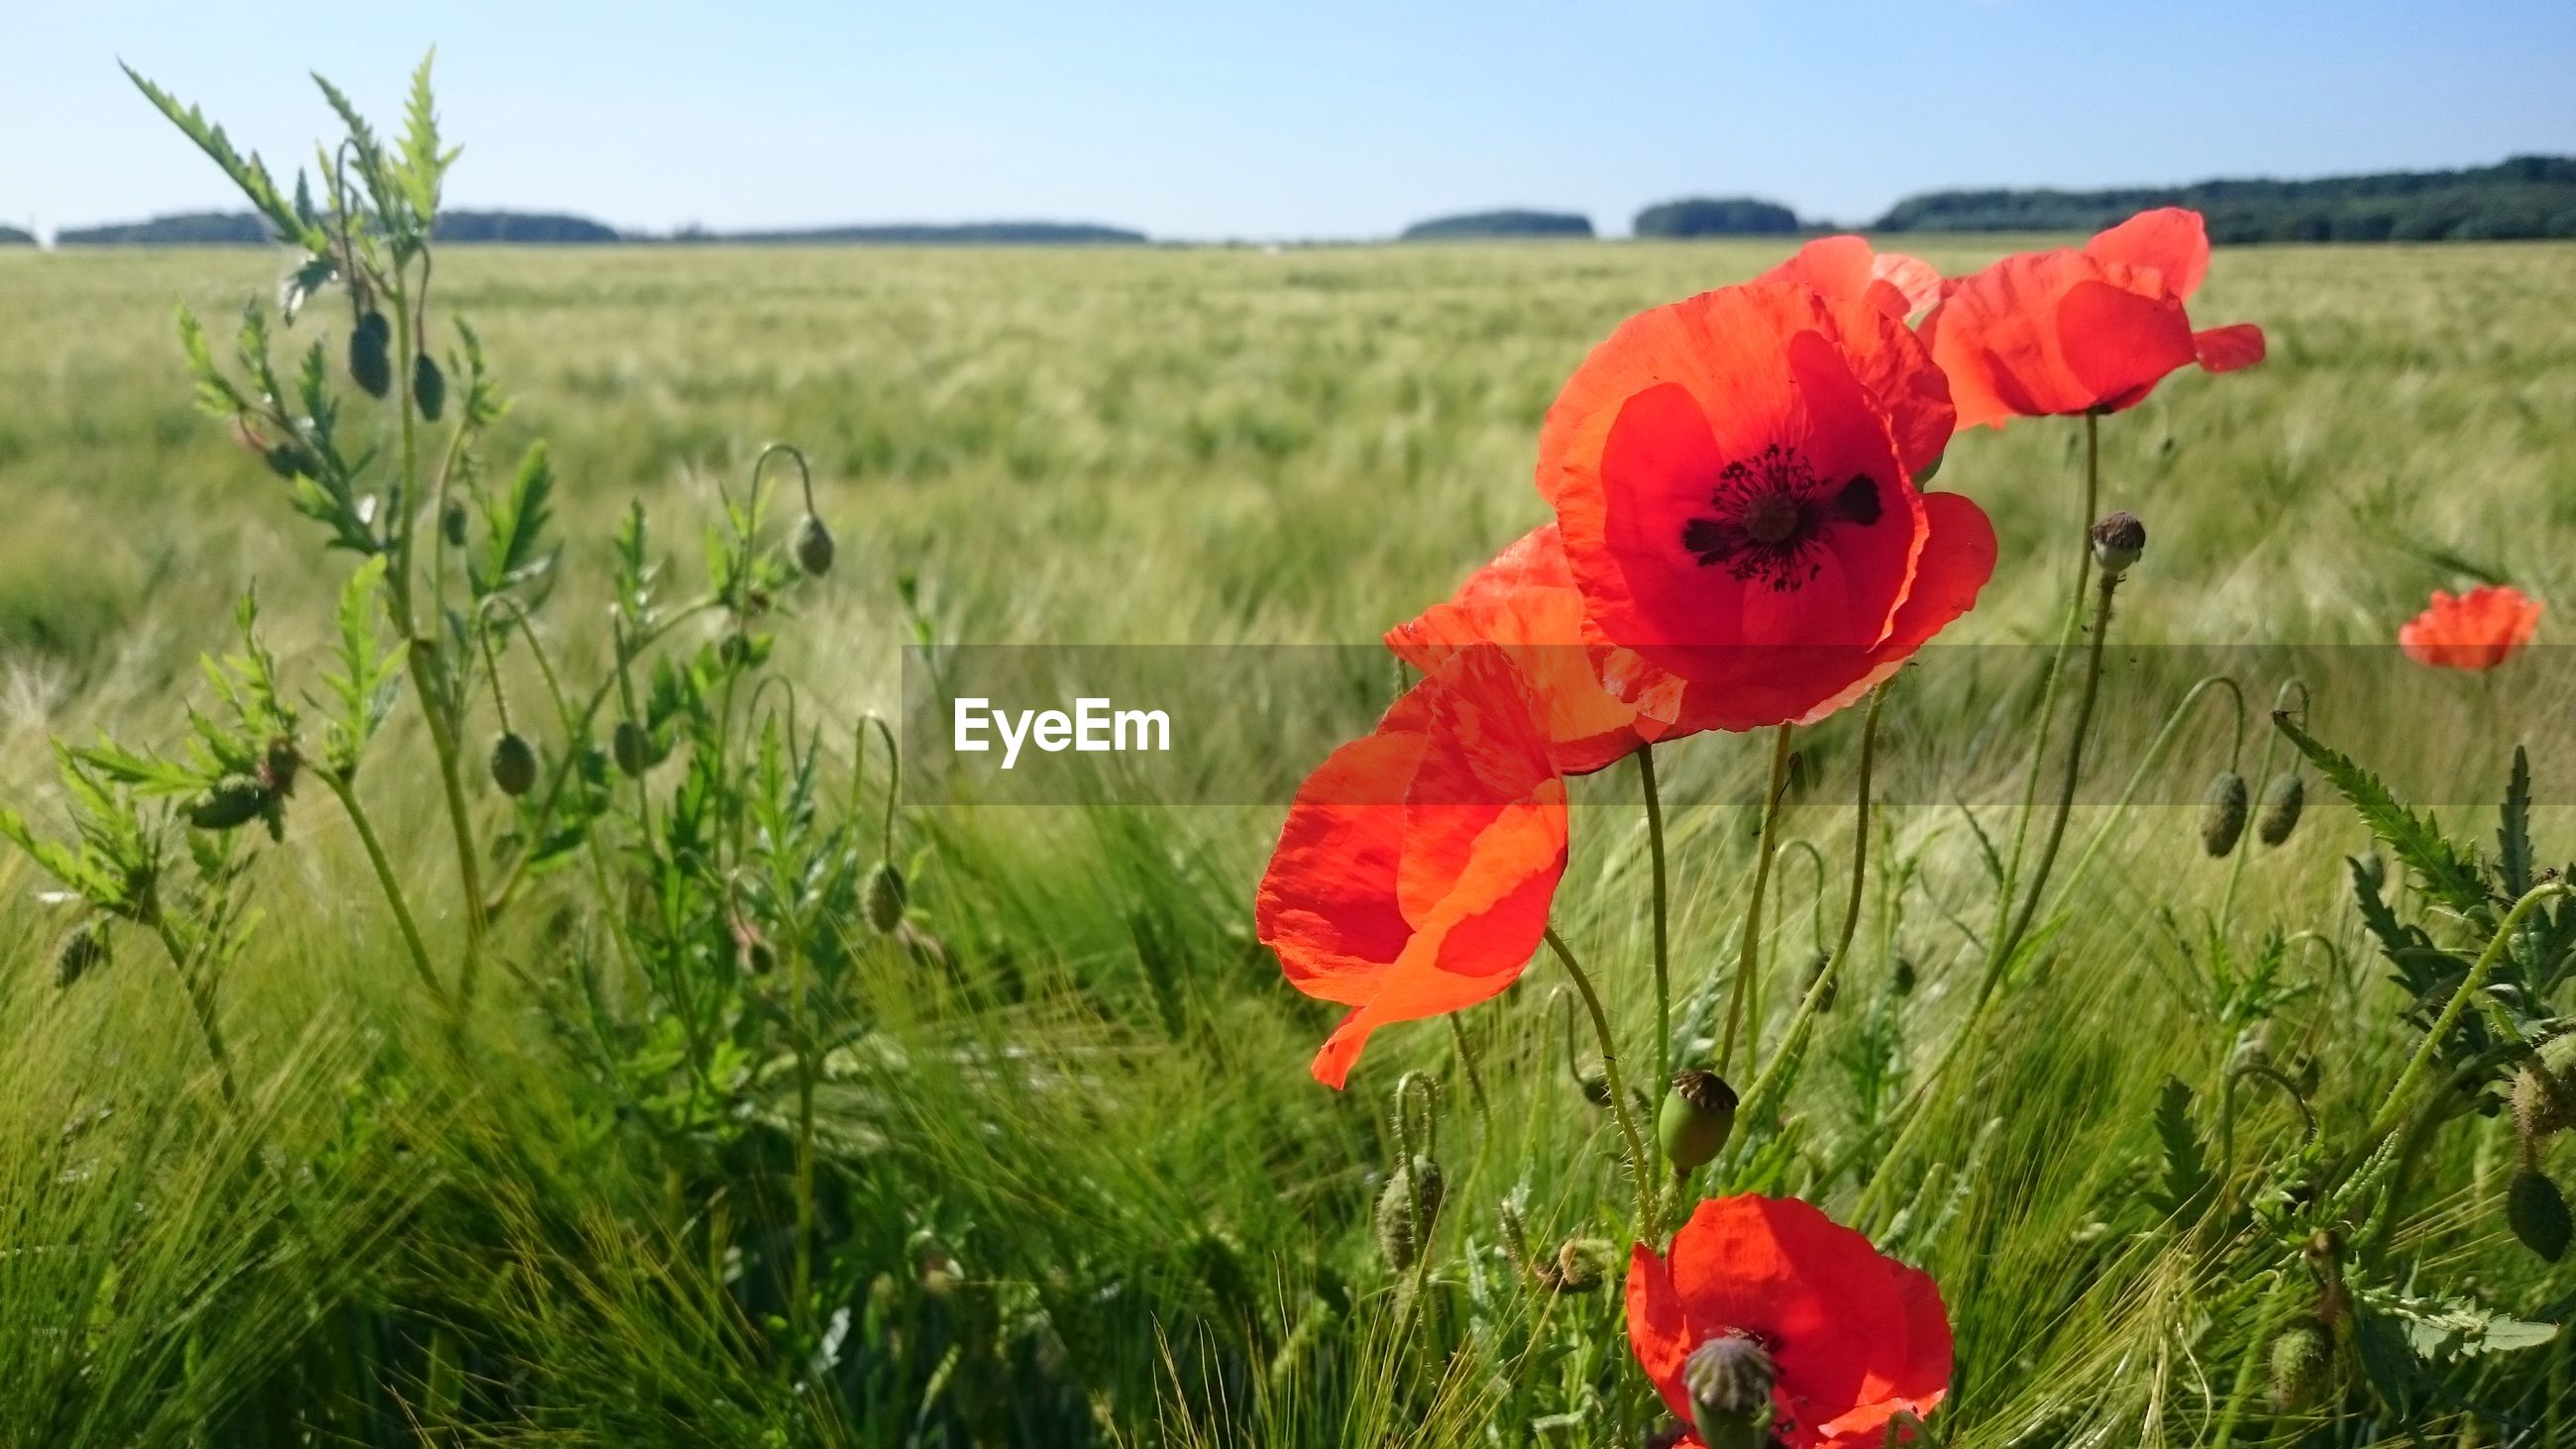 CLOSE-UP OF RED POPPY FLOWER IN FIELD